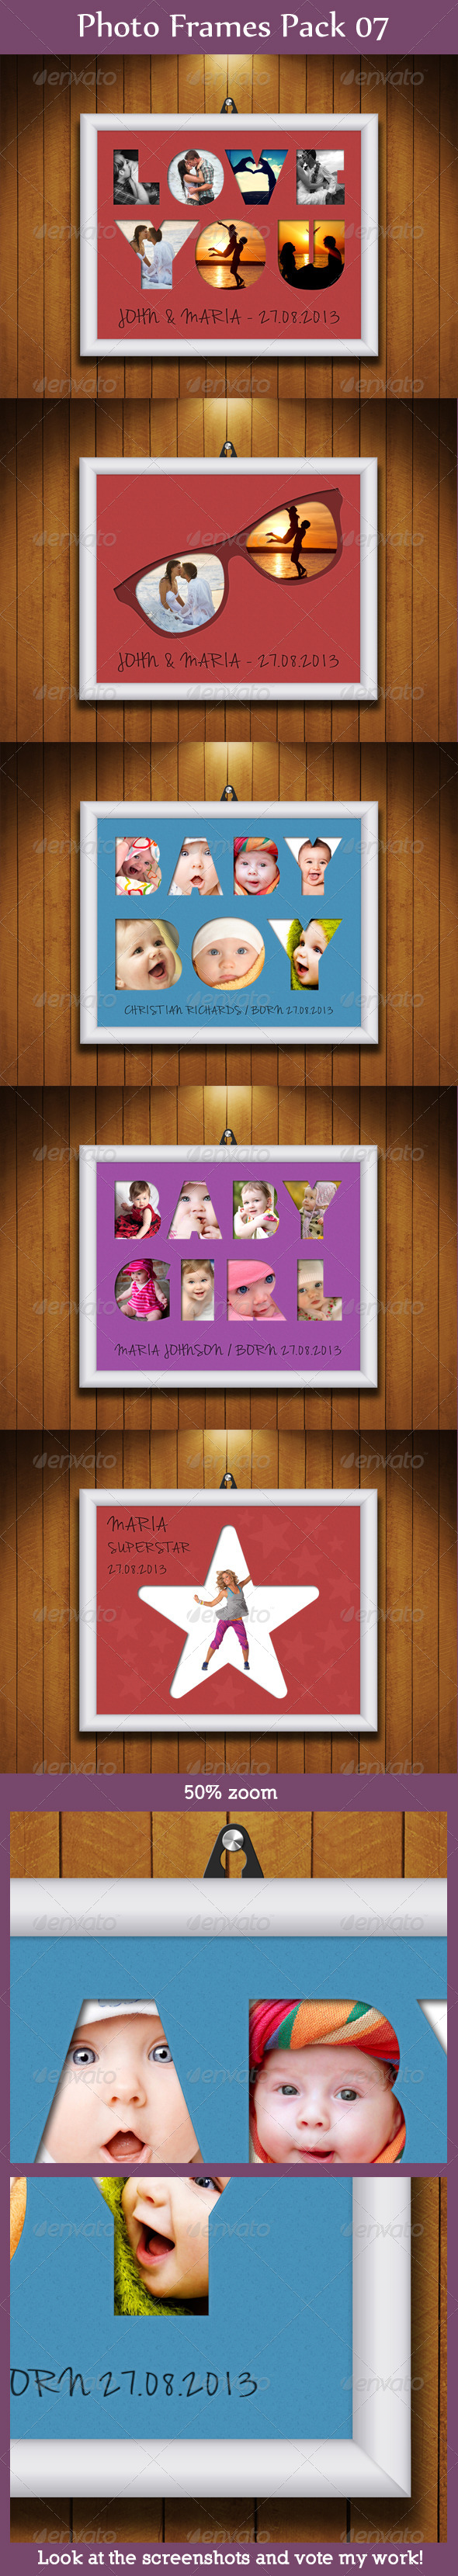 GraphicRiver Photo Frames Pack 07 5966667